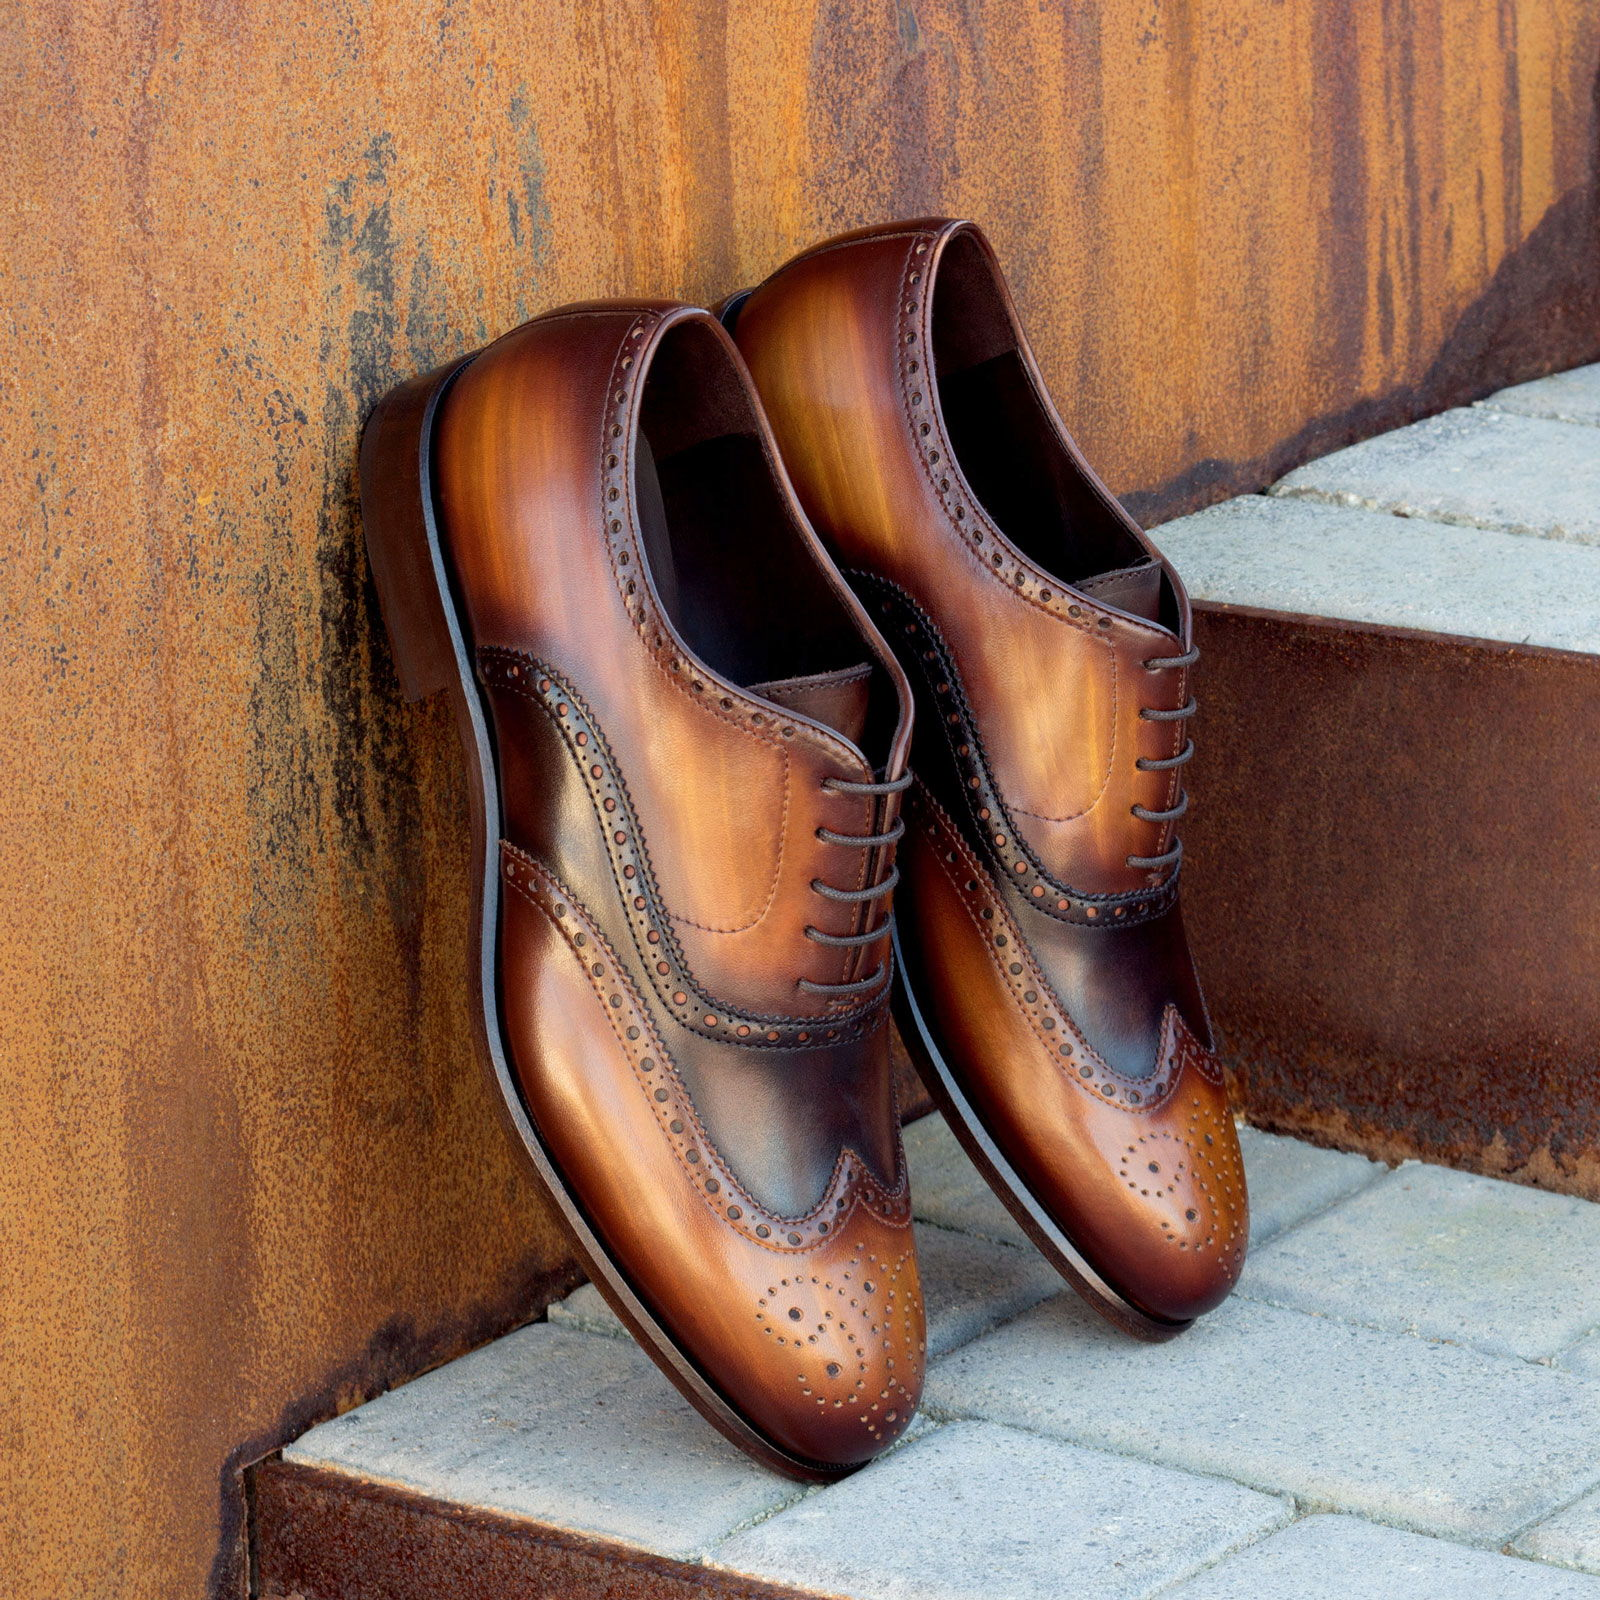 Full brogue dark brown painted calf + cognac crust patina : 340€